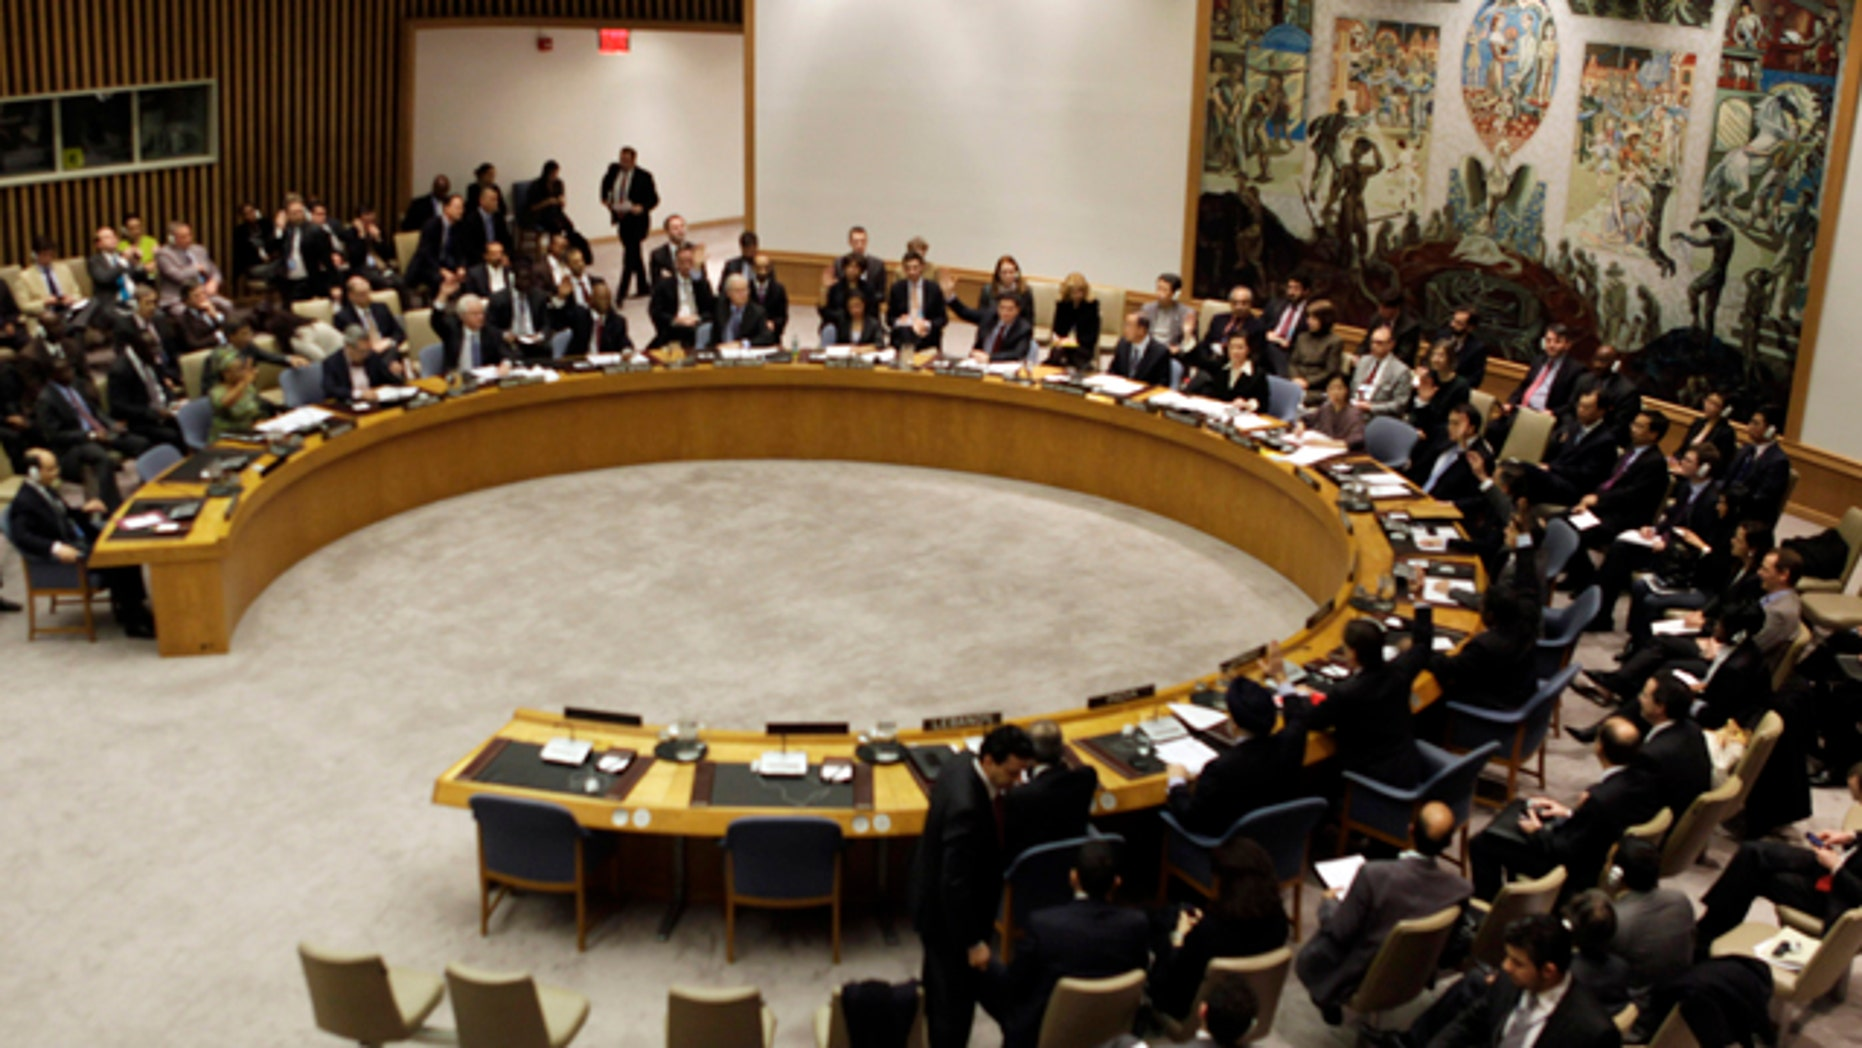 Feb. 26, 2011: United Nations Security Council votes on the peace and security in Africa at U. N. headquarters. The U.N. Security Council met urgently Saturday to consider new sanctions against Libya to halt a violent crackdown on anti-government protesters.